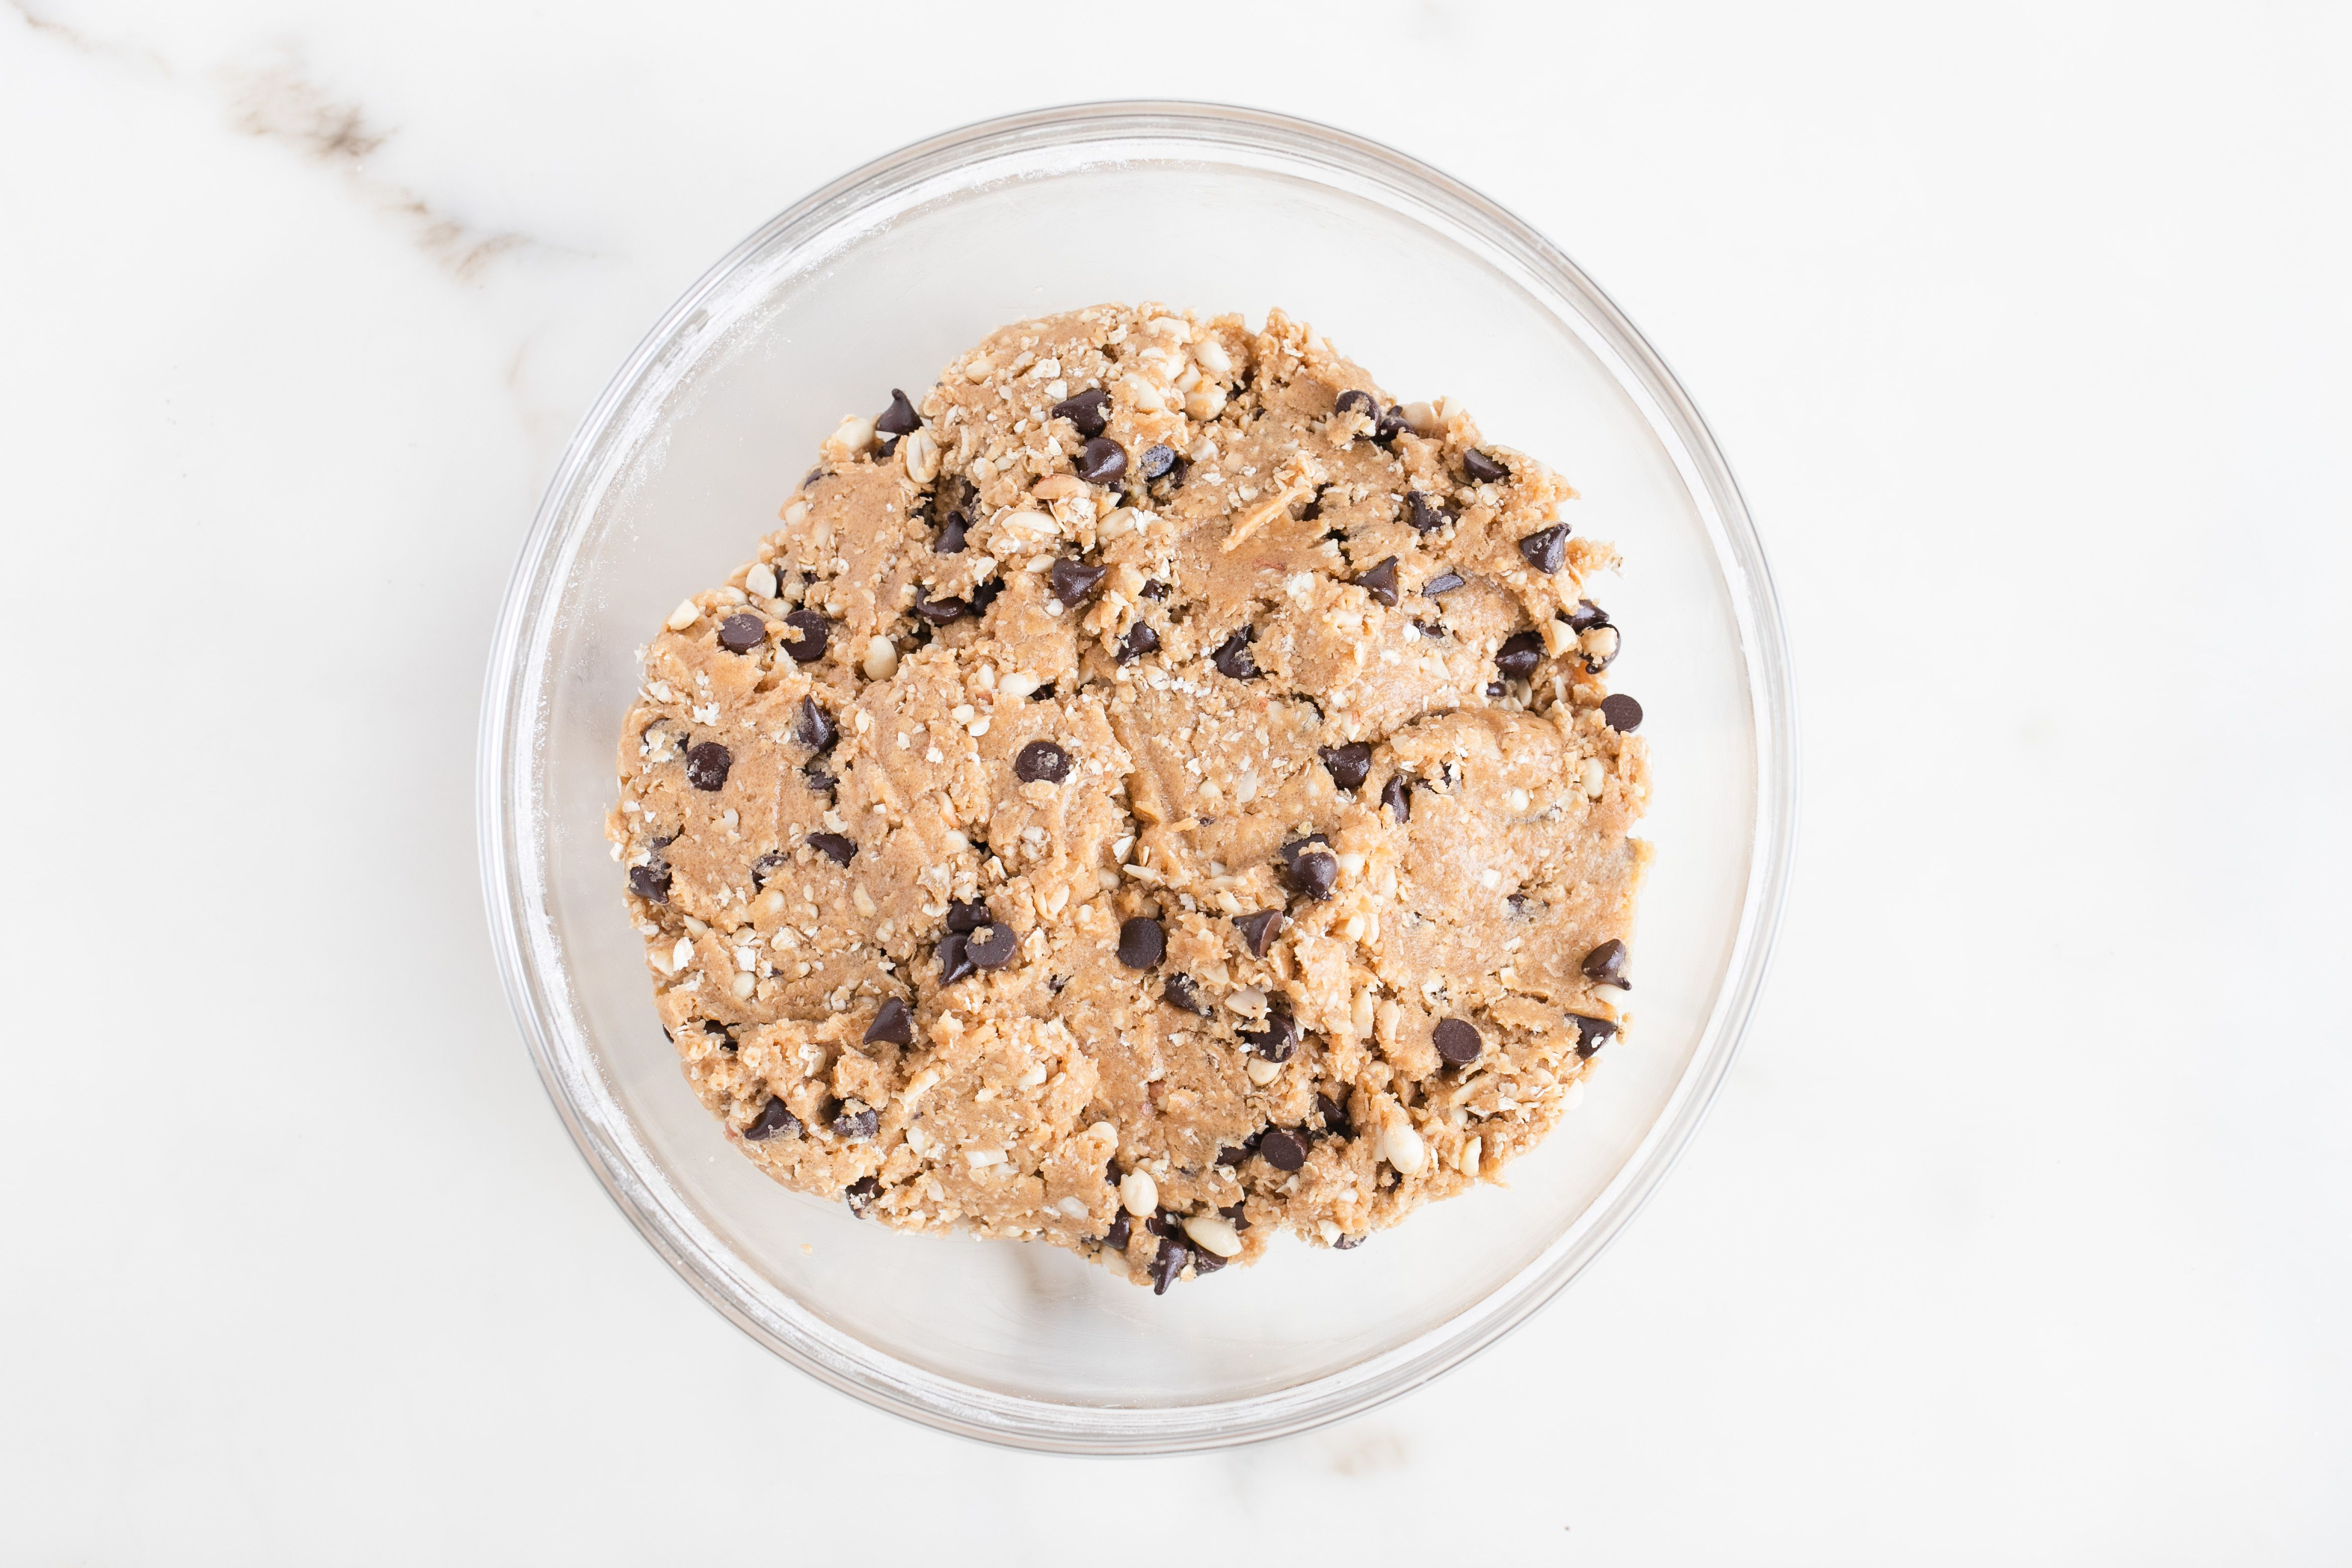 Stir in oats and chocolate chips